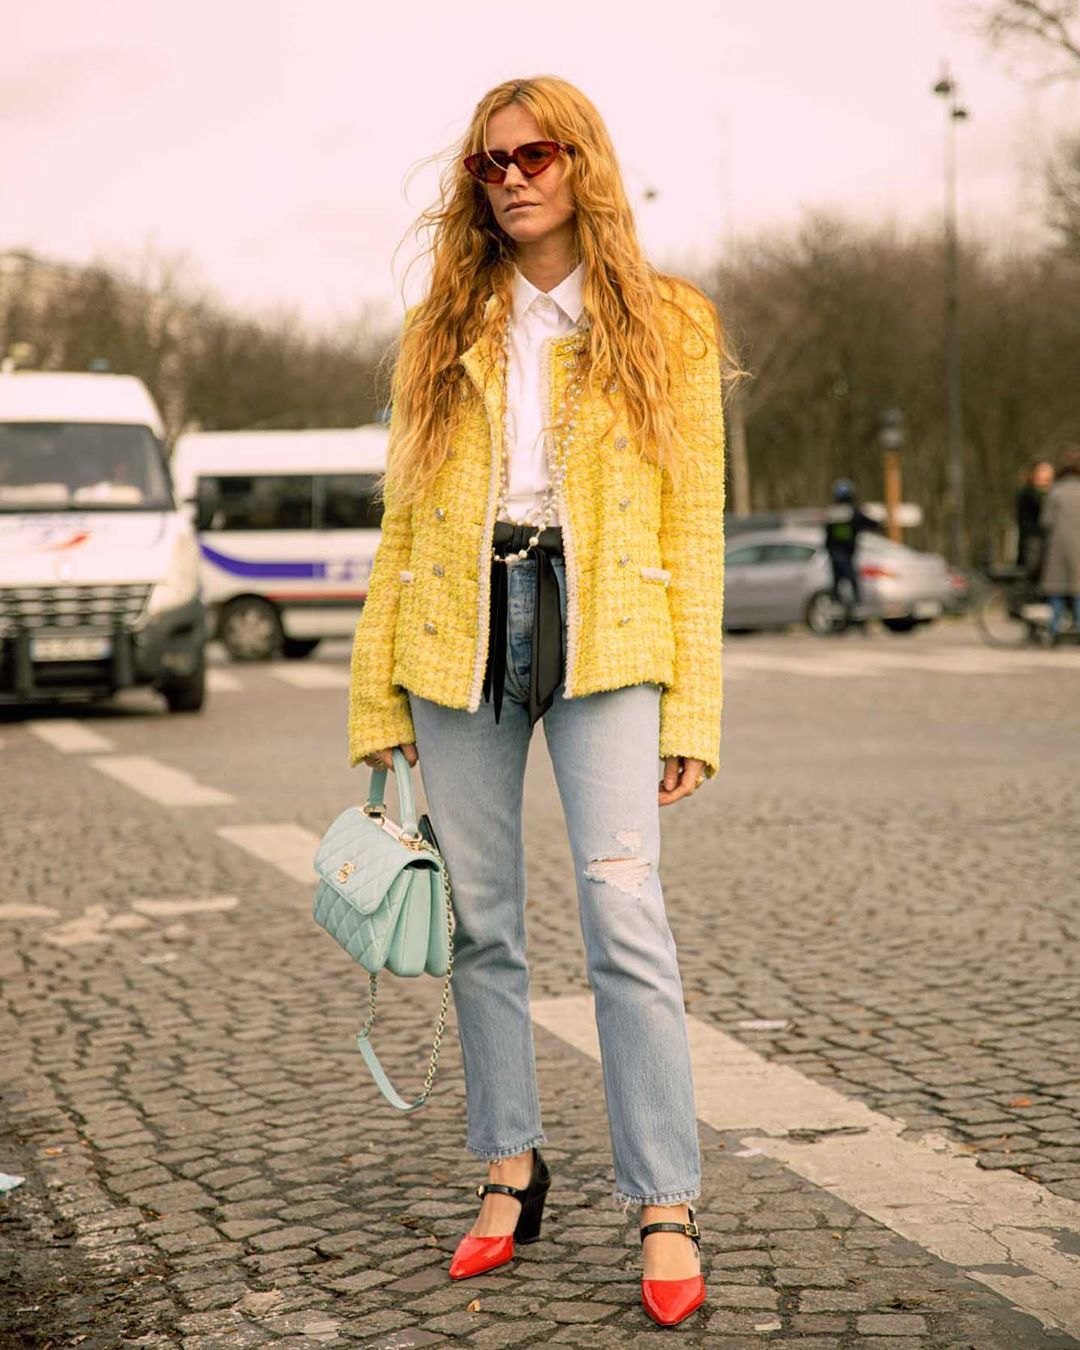 blanca-miro-chanel-tweed-jacket-yellow